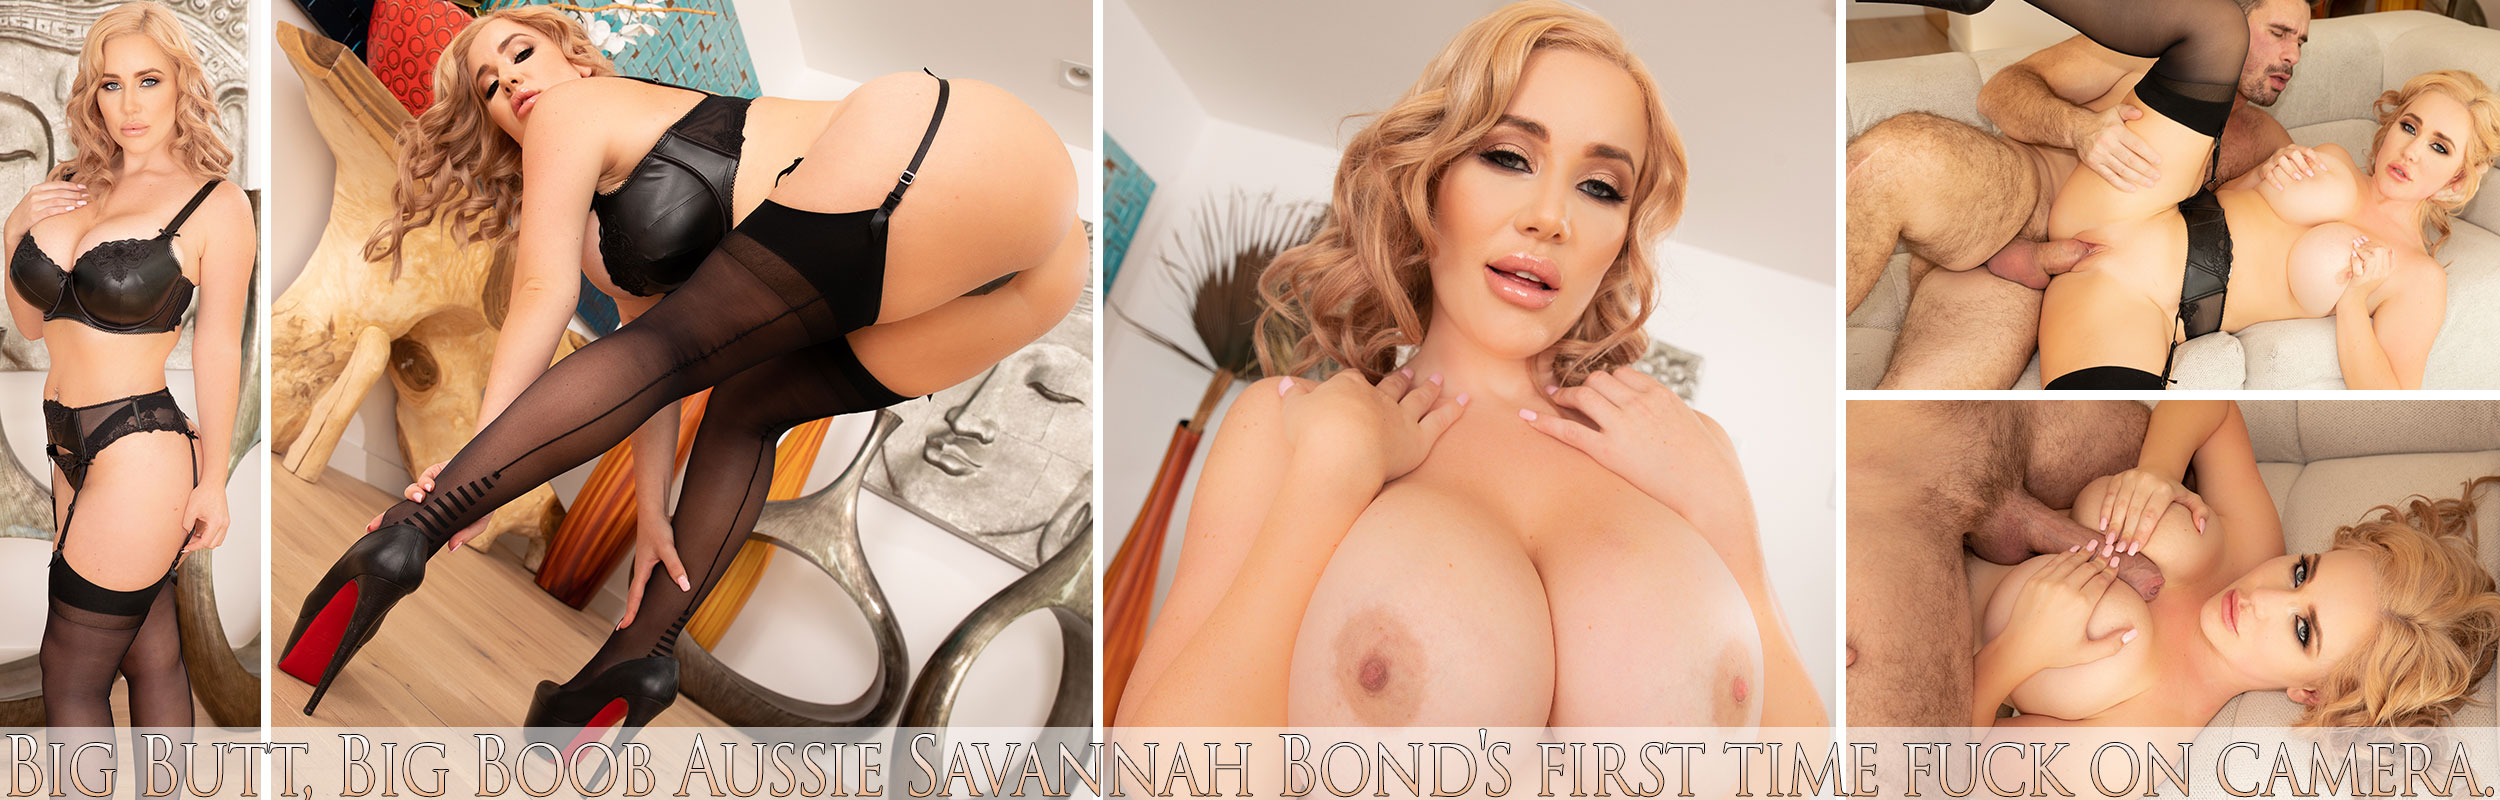 Big Butt, Big Boob Aussie Savannah Bond's first time fuck on camera.